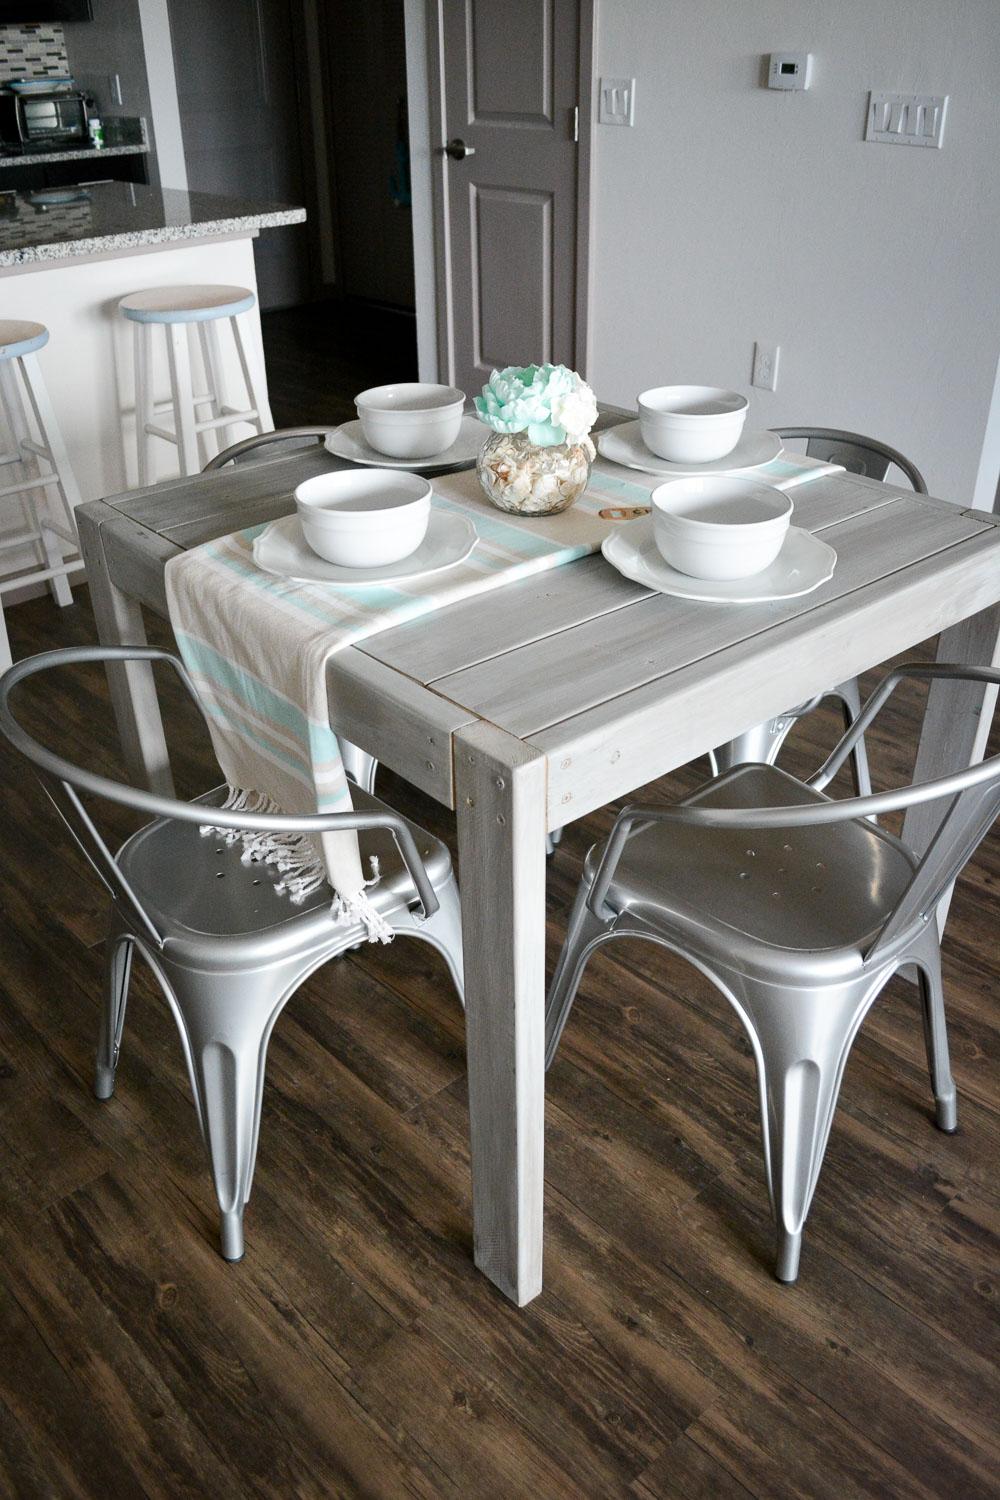 Ana White | DIY Farmhouse Table For Under $40! - DIY Projects